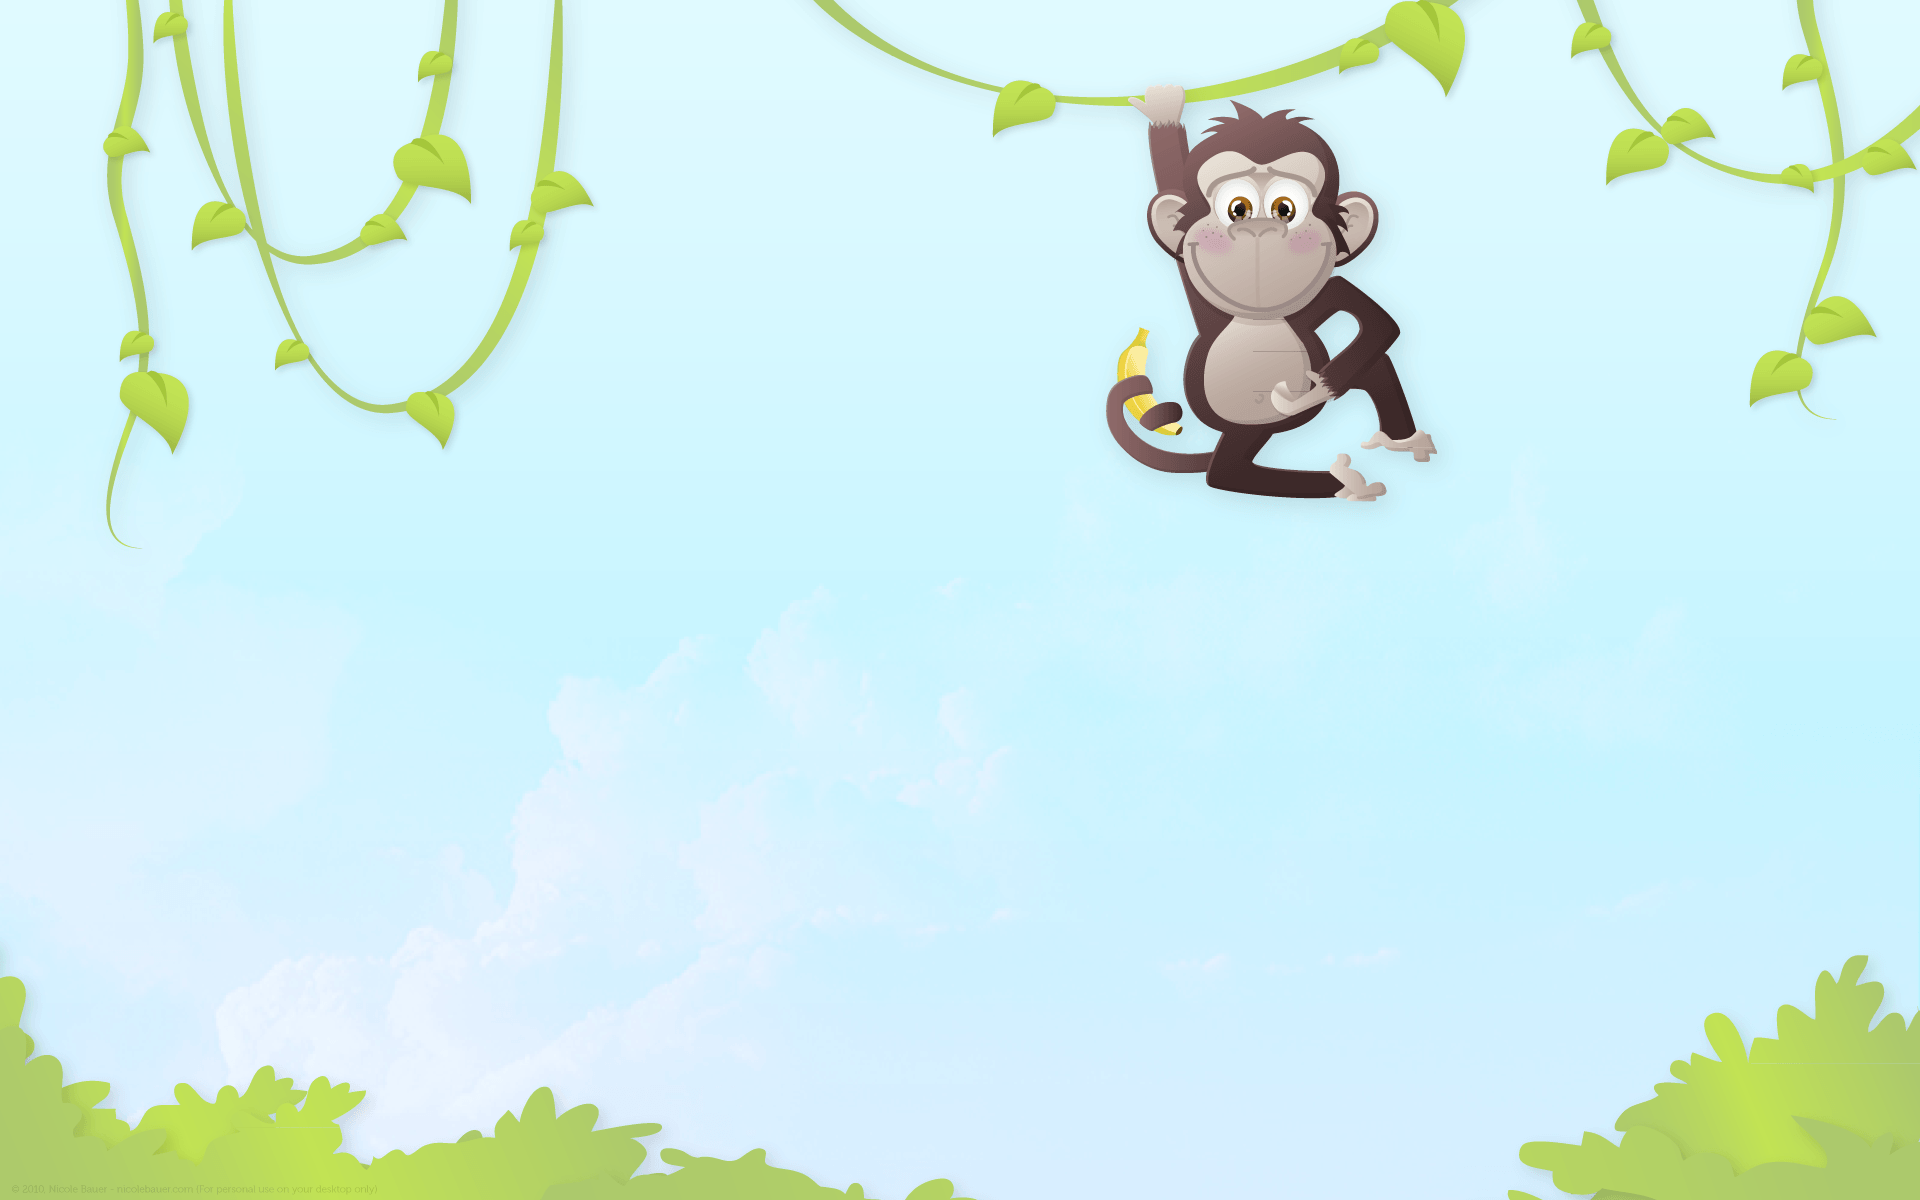 japanese wallpaper cartoon monkey - photo #15